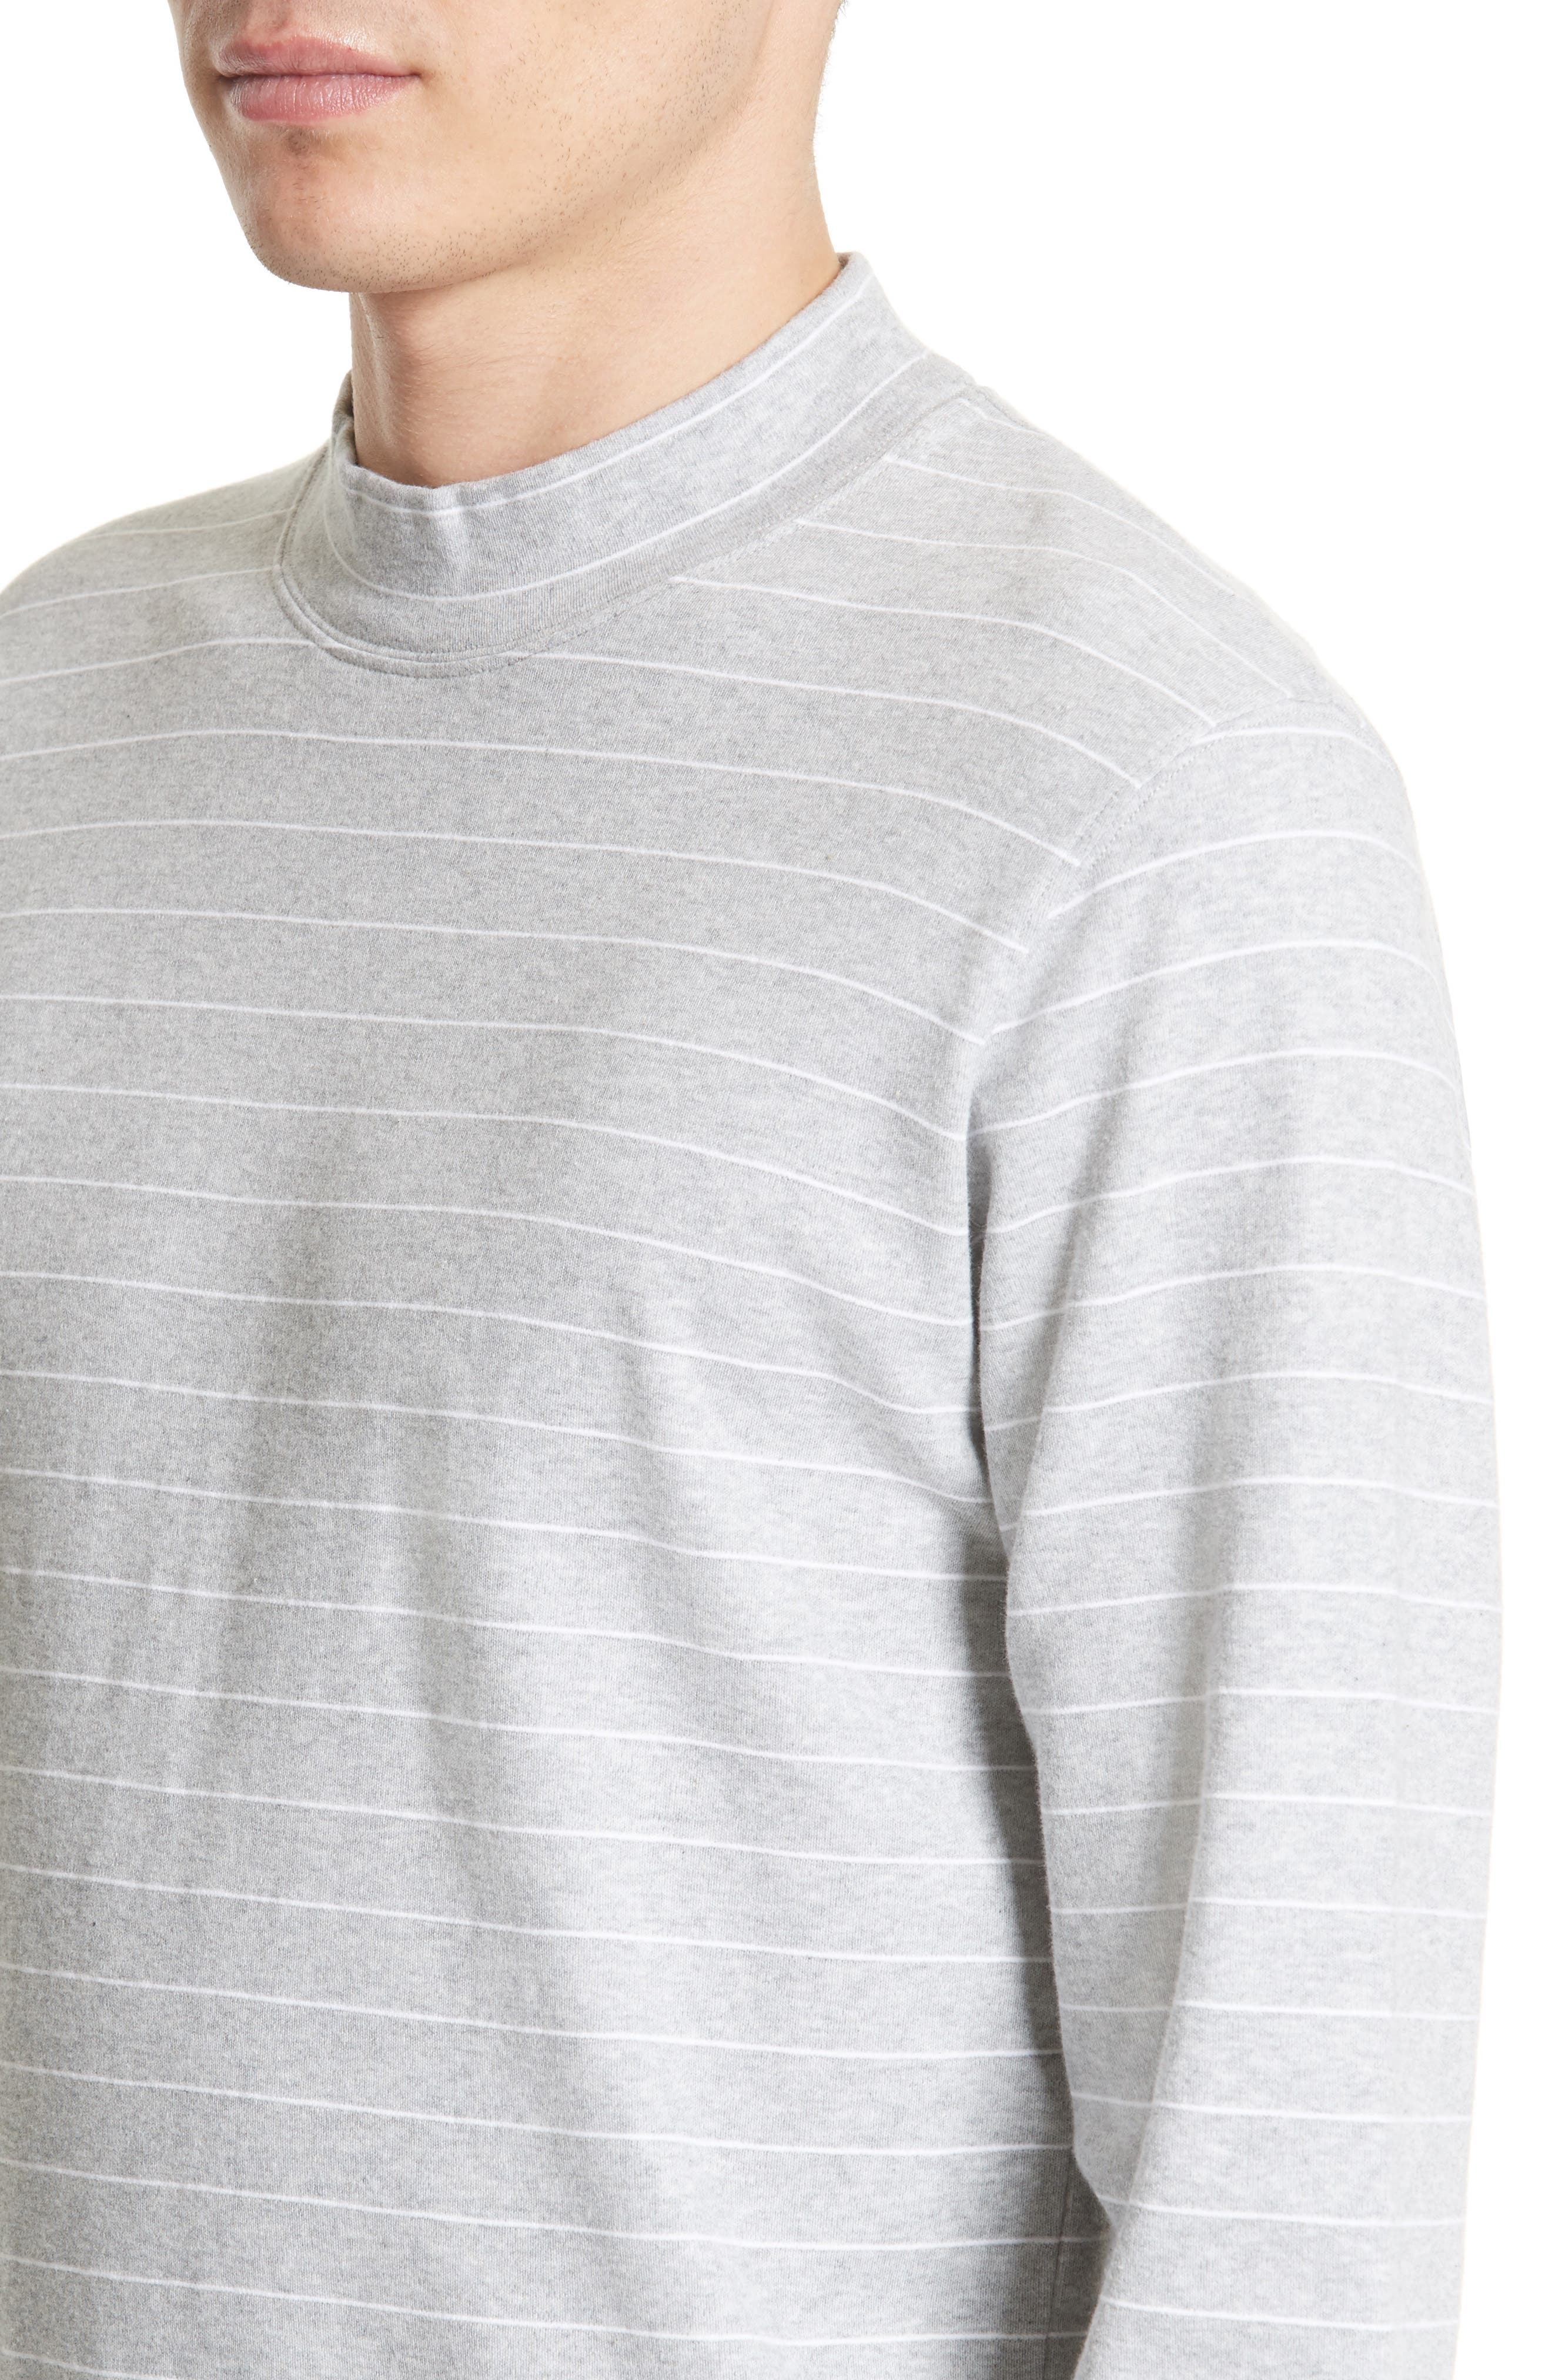 NORSE PROJECTS,                             Harald Mock Neck T-Shirt,                             Alternate thumbnail 4, color,                             050